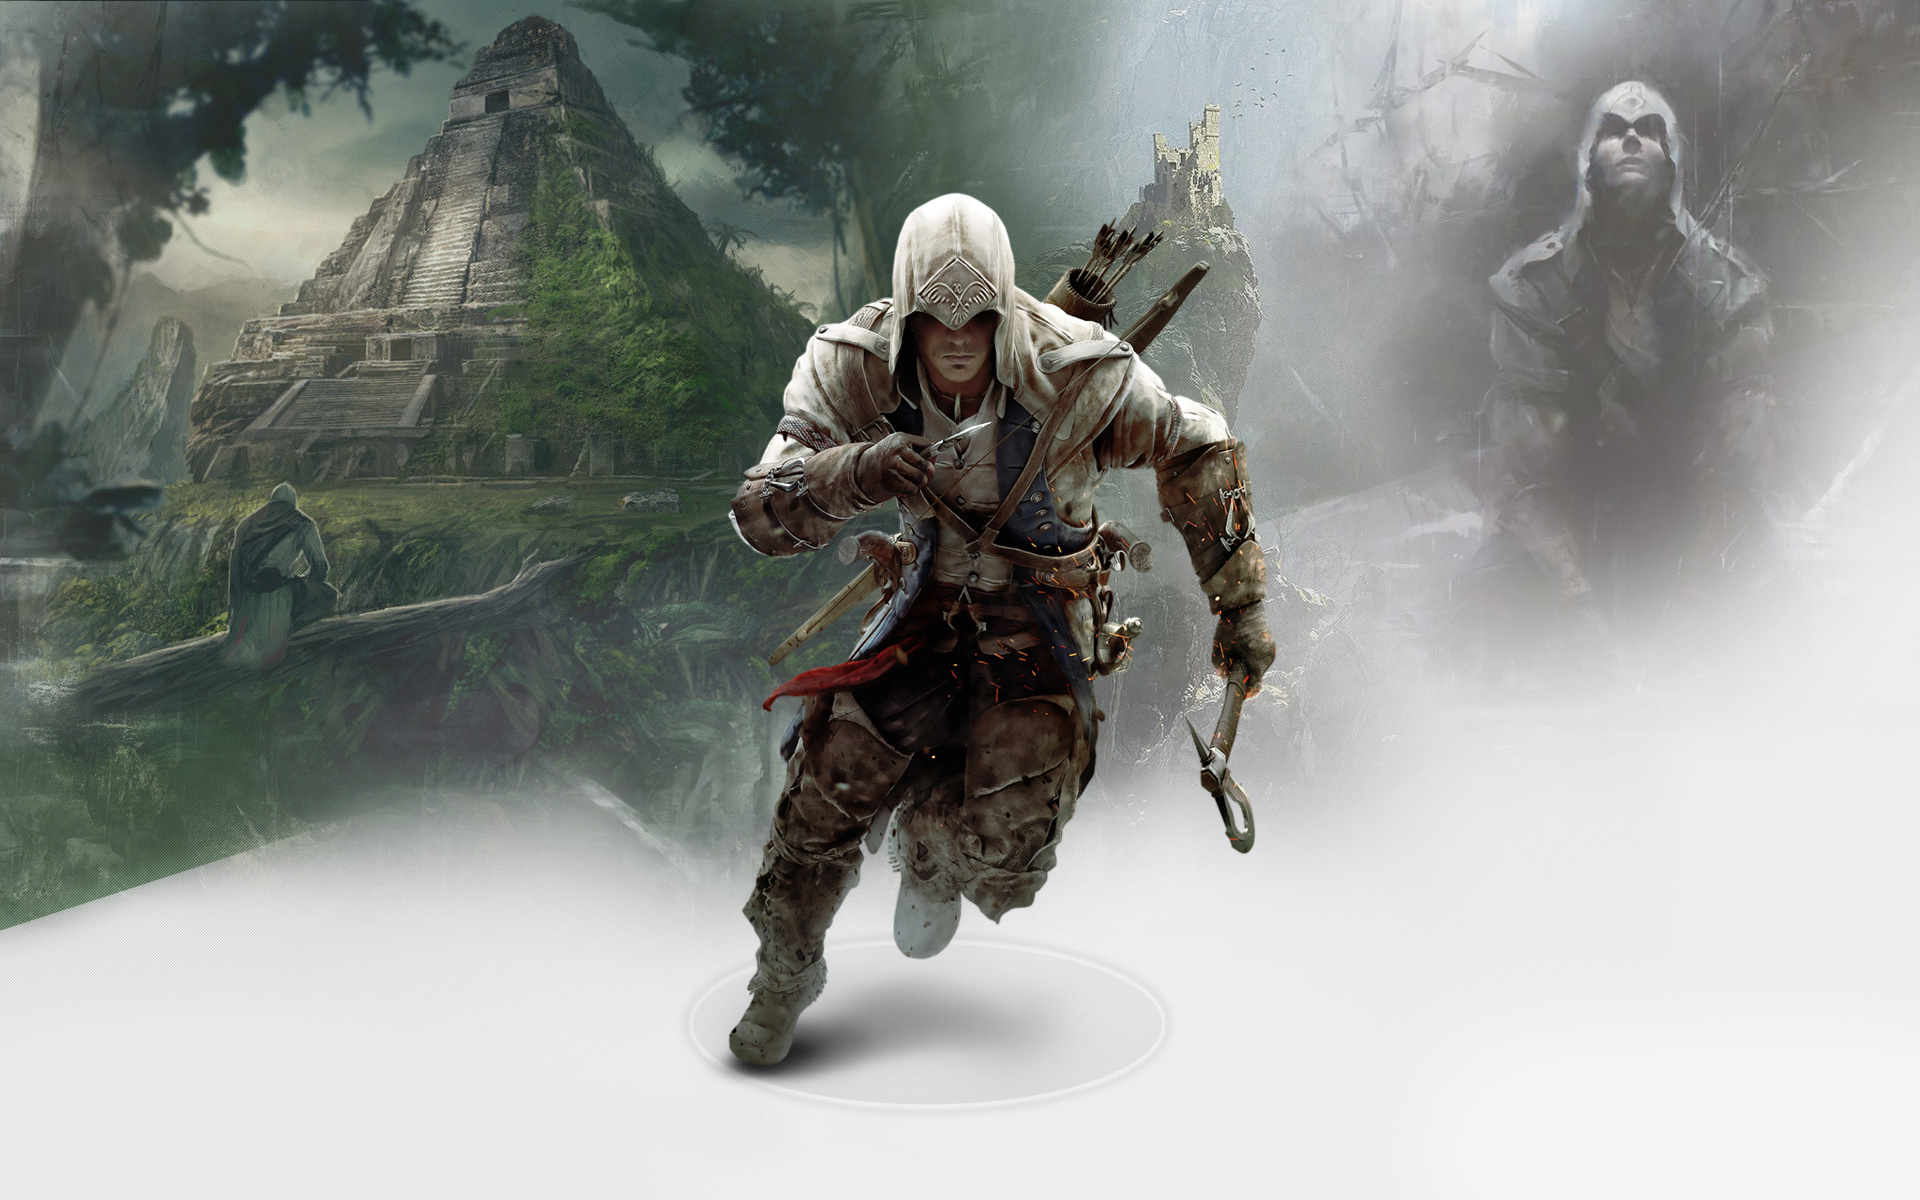 Connor in Assassin's Creed 3 1517.8 Kb